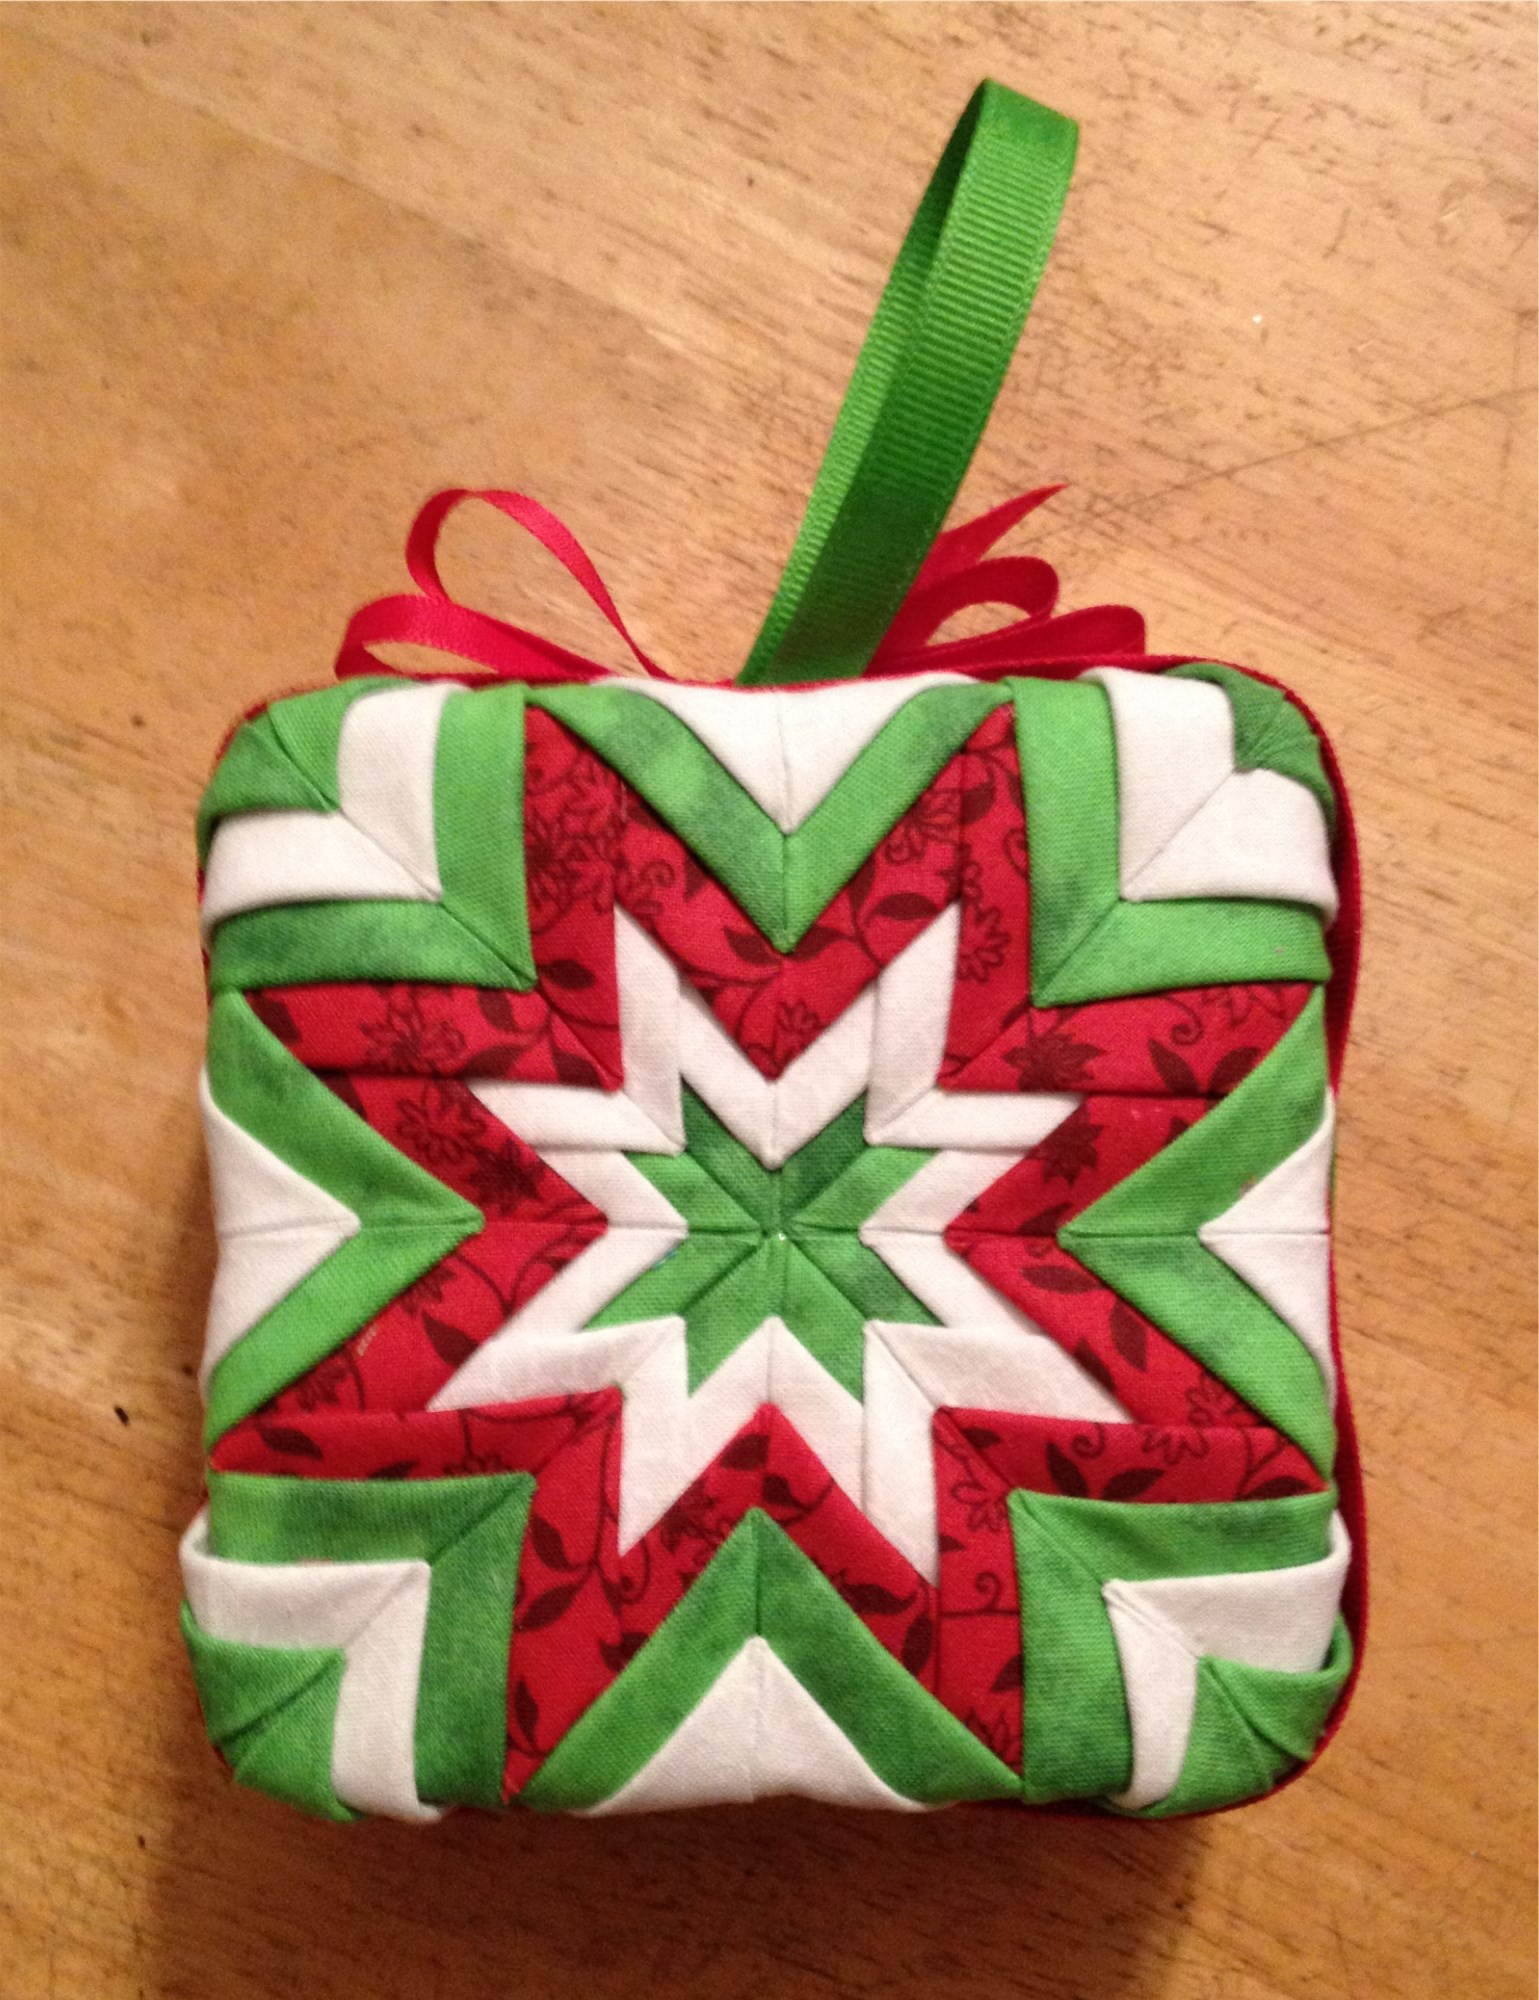 Holiday Ornaments | hooked-on-crafting.com